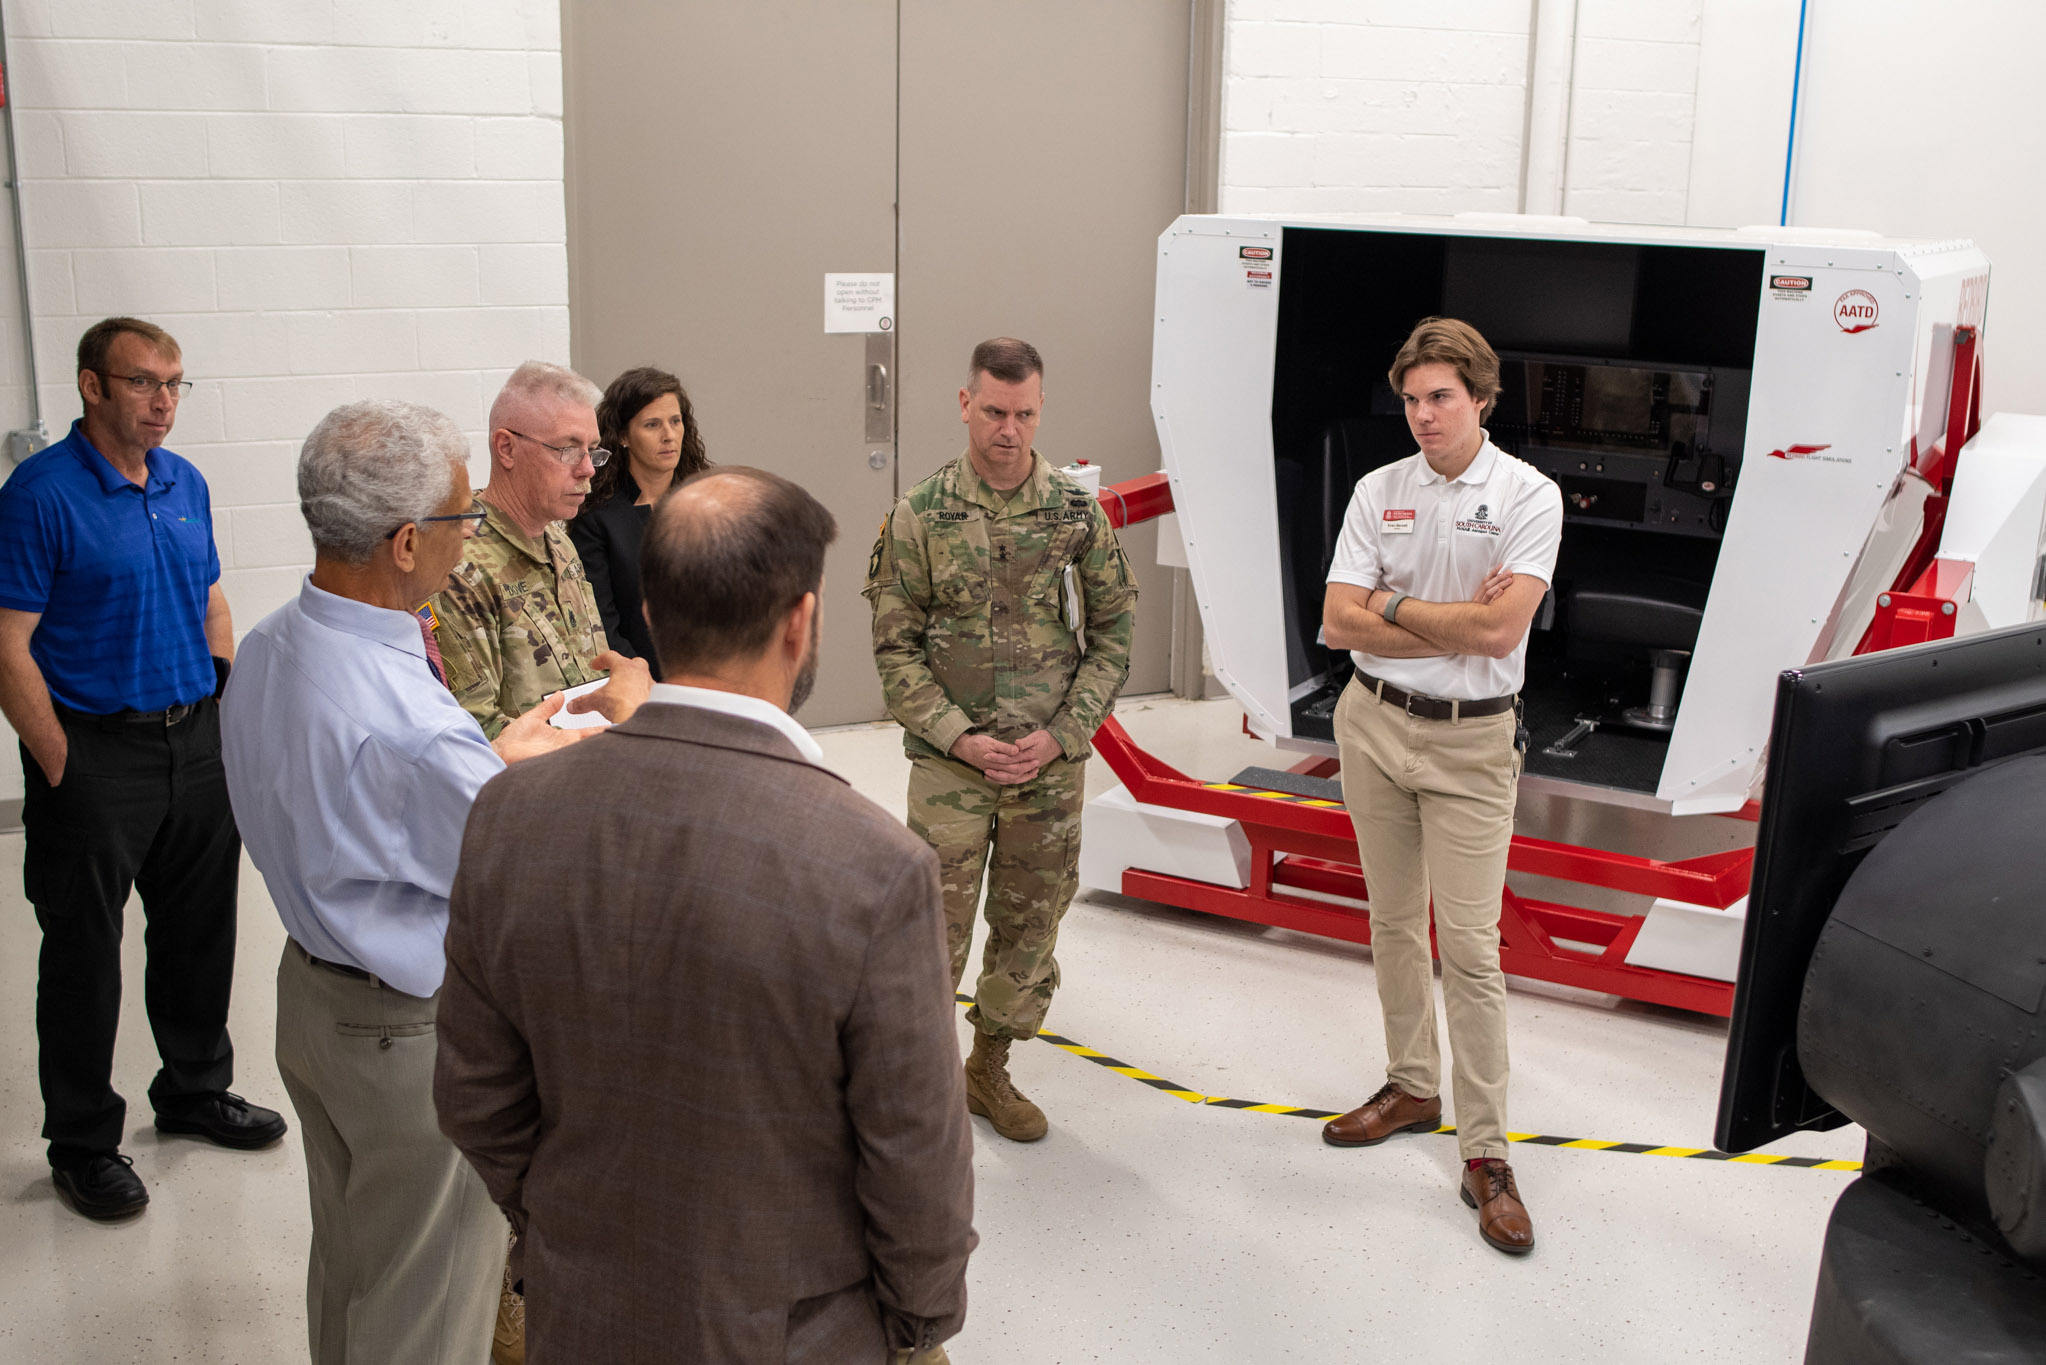 Dr. Bayoumi talks to army officials and student in front of technology.